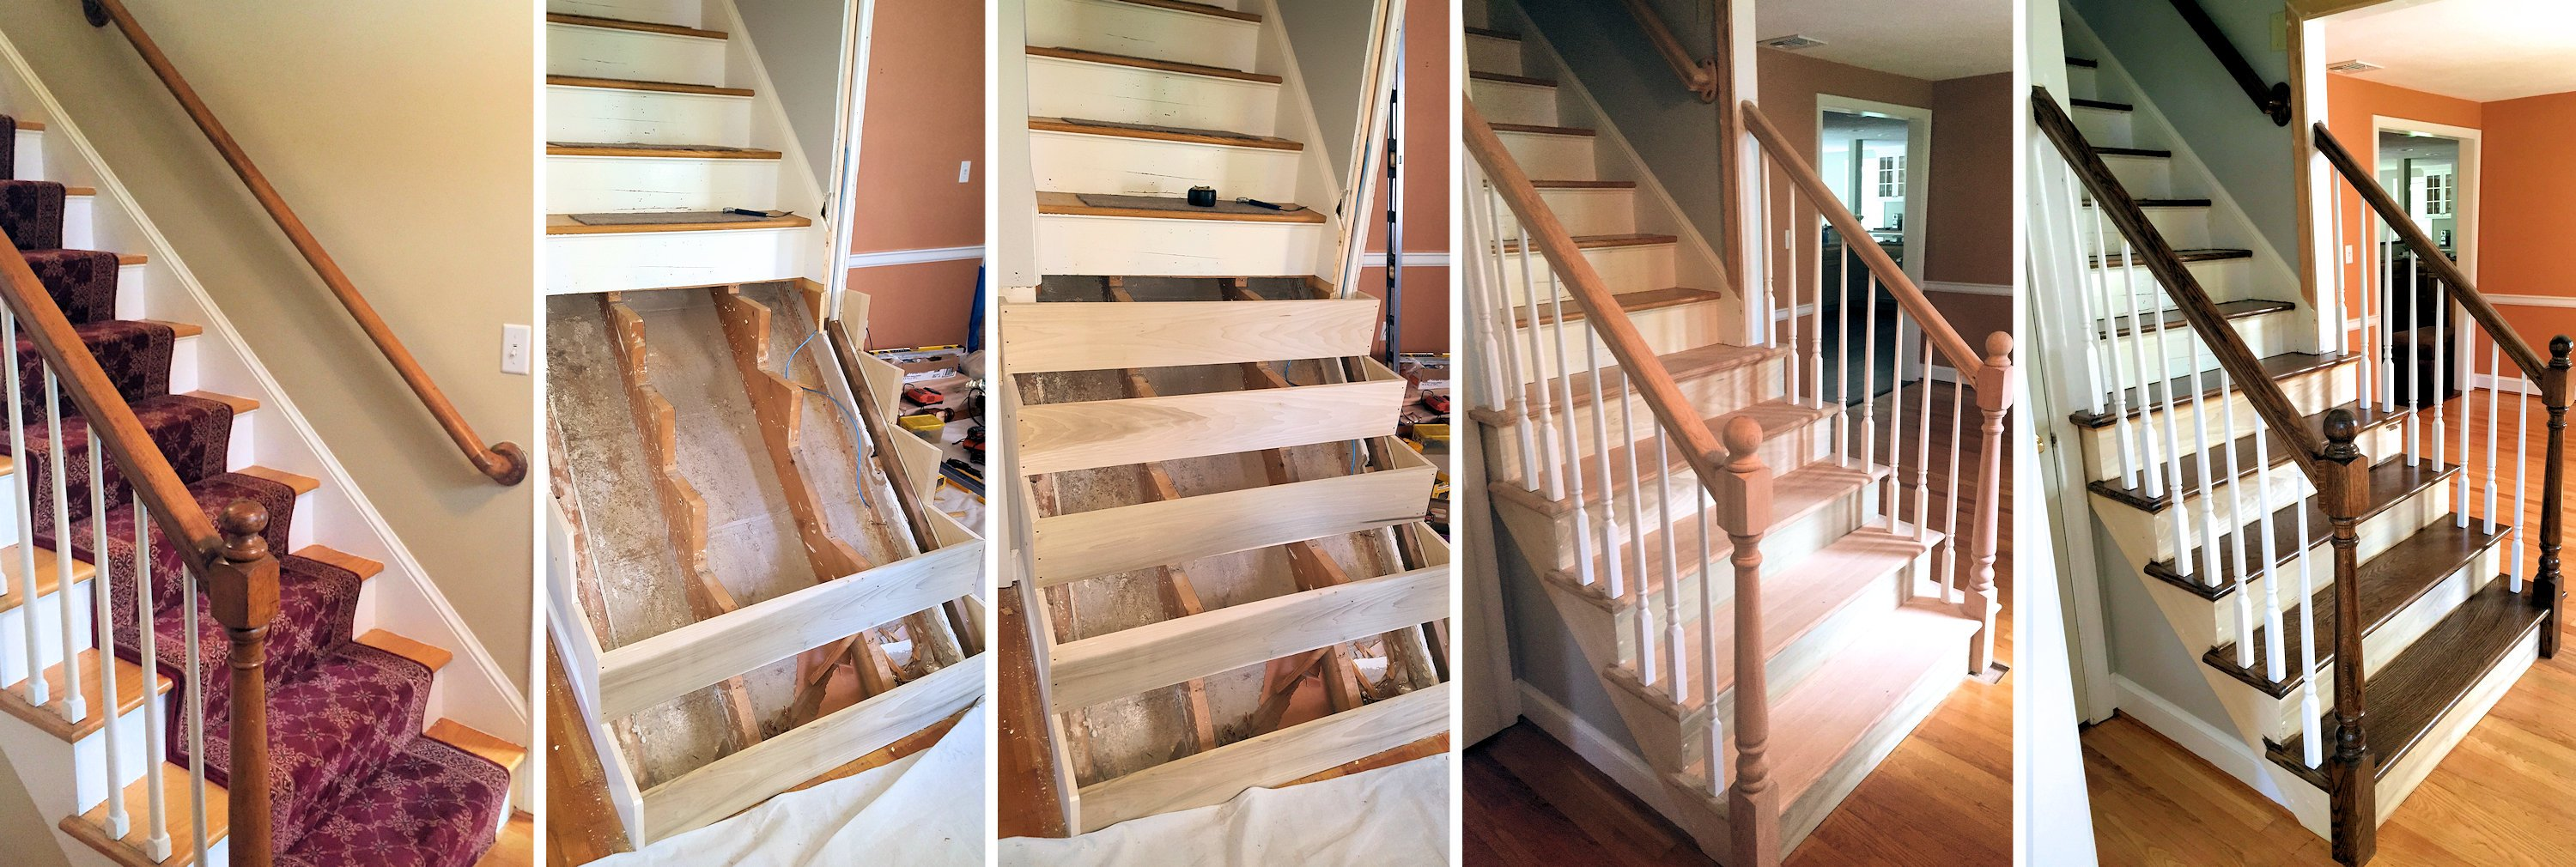 J & M staircases - 5 Step Process